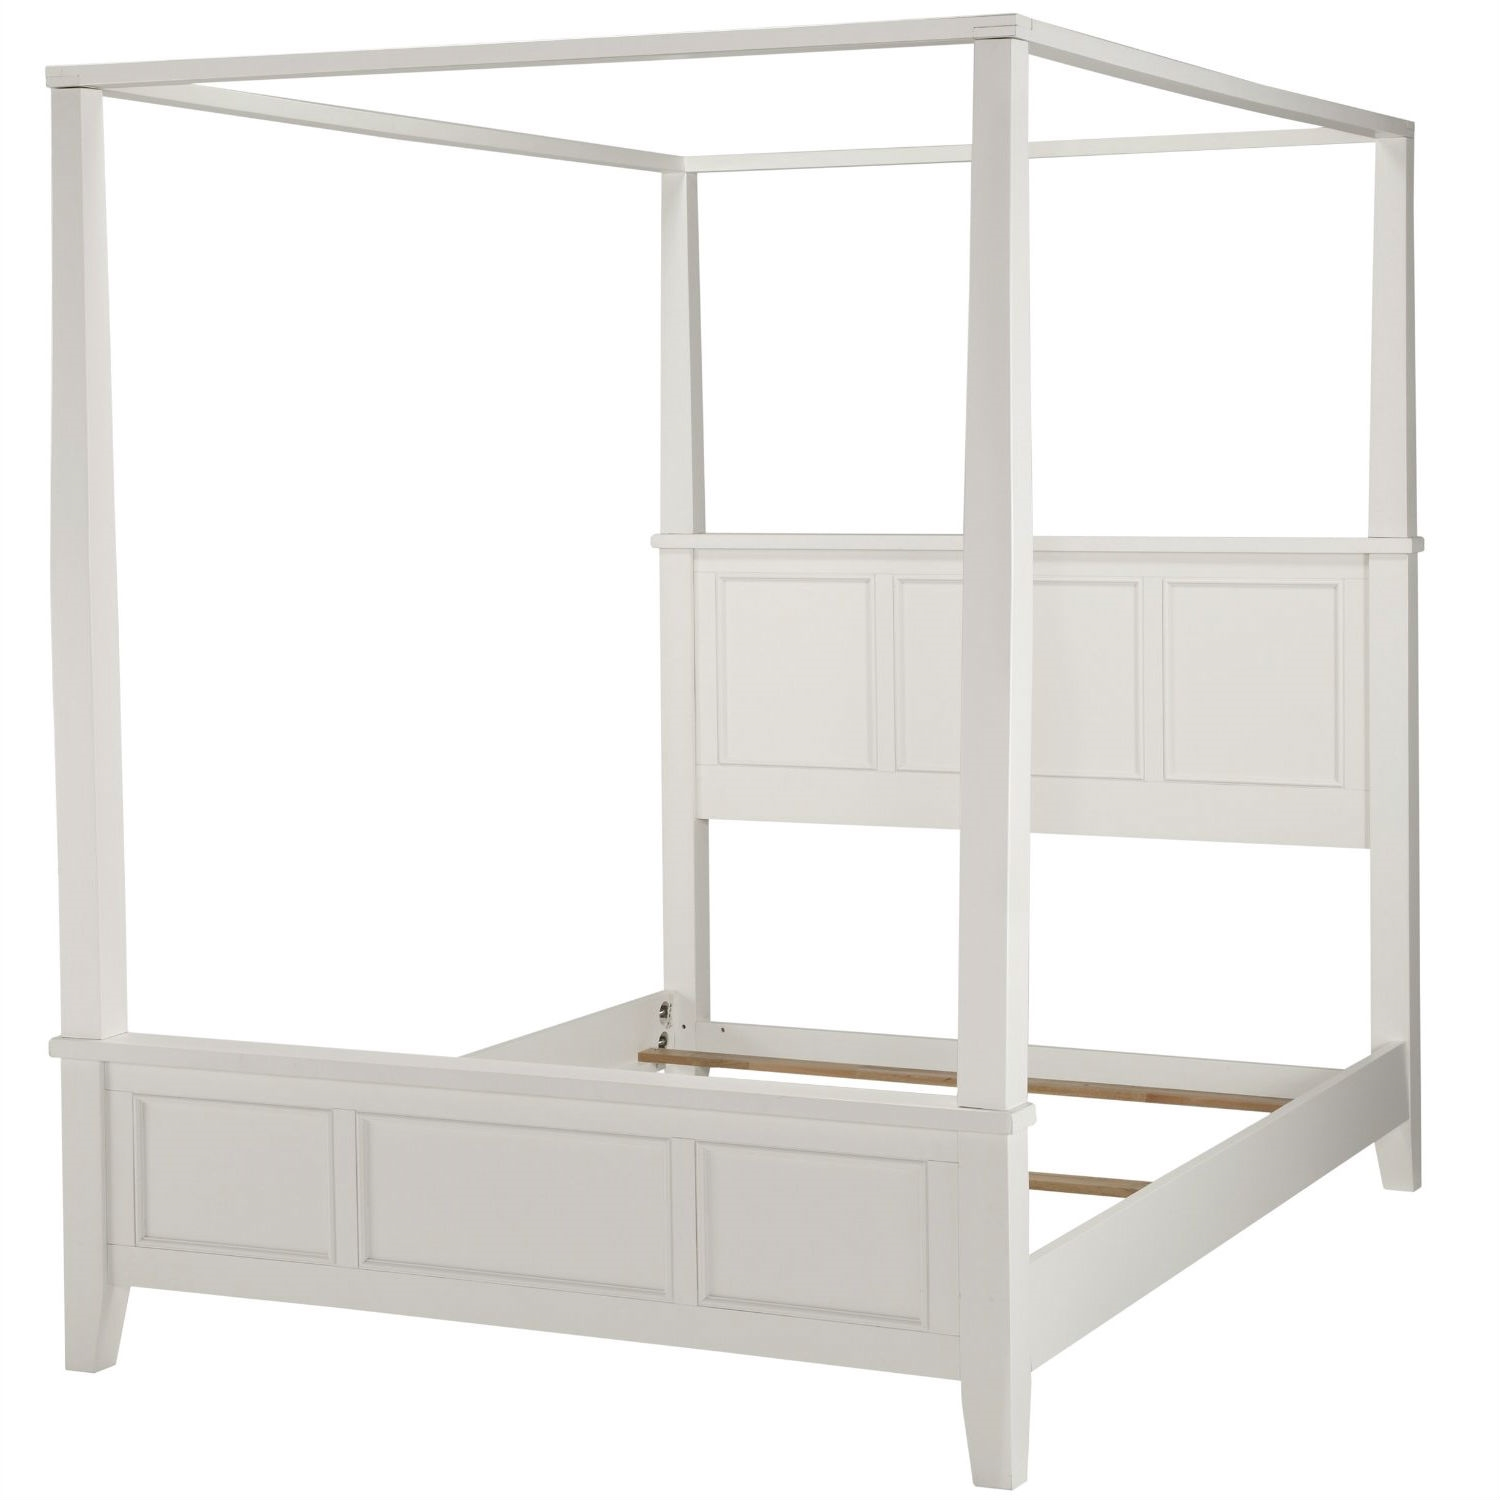 Queen size Canopy Bed in Contemporary White Wood Finish ...